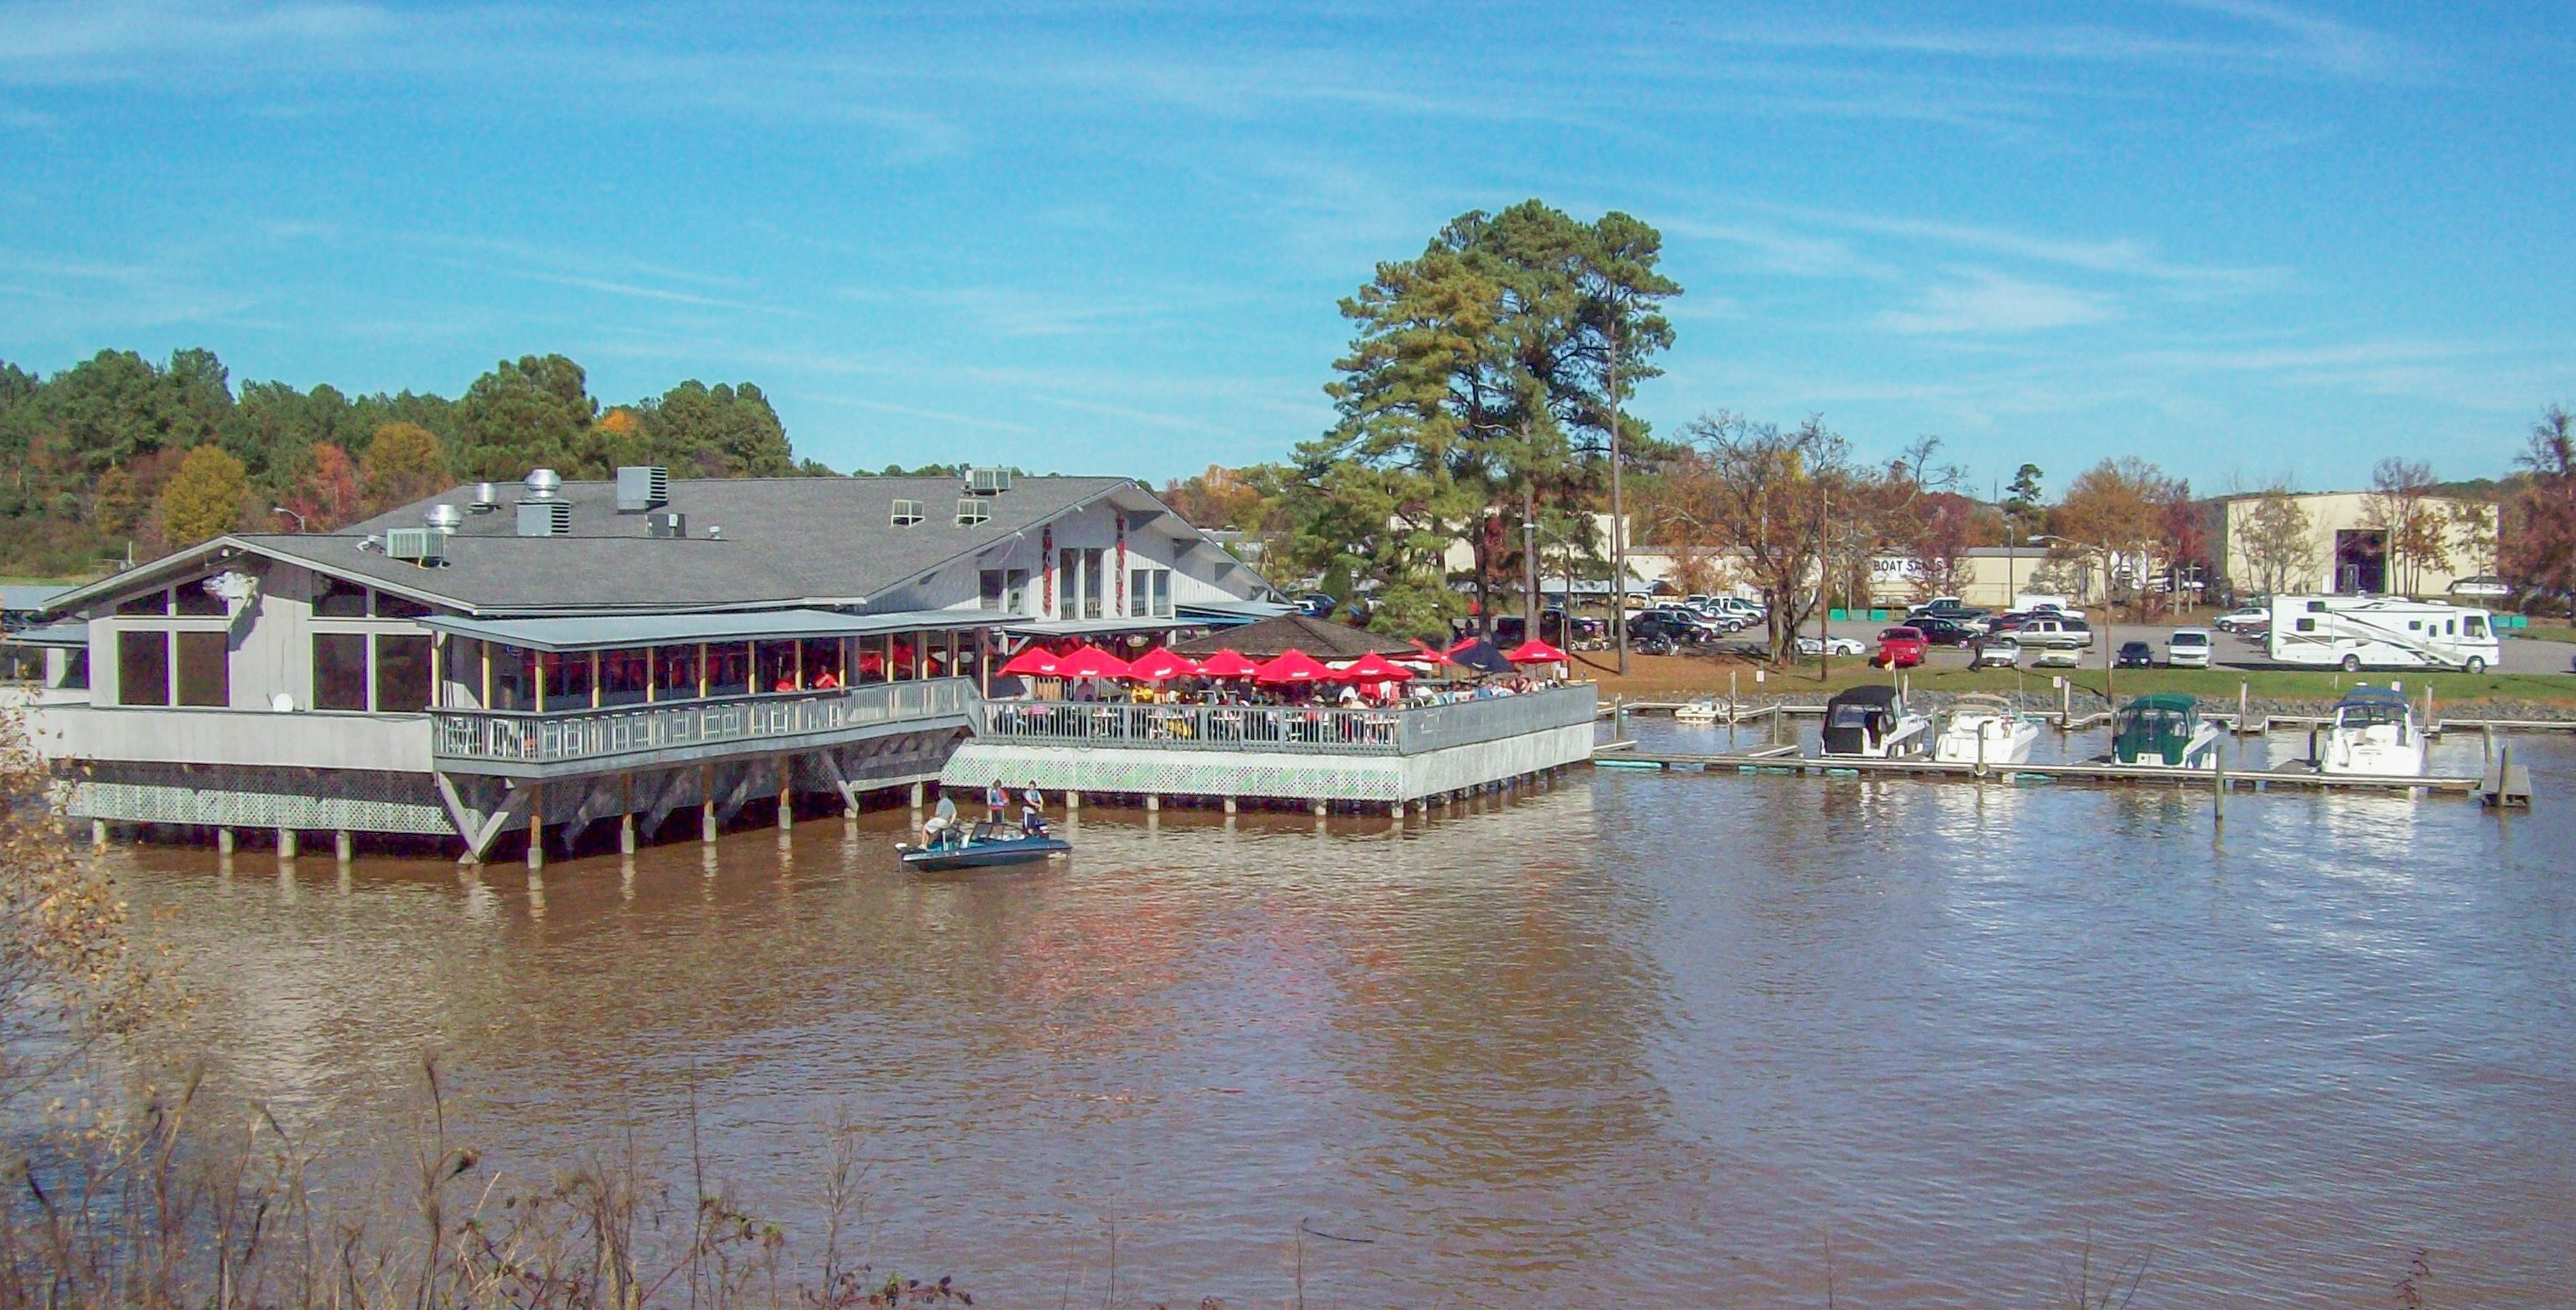 restaurant on the water.jpg